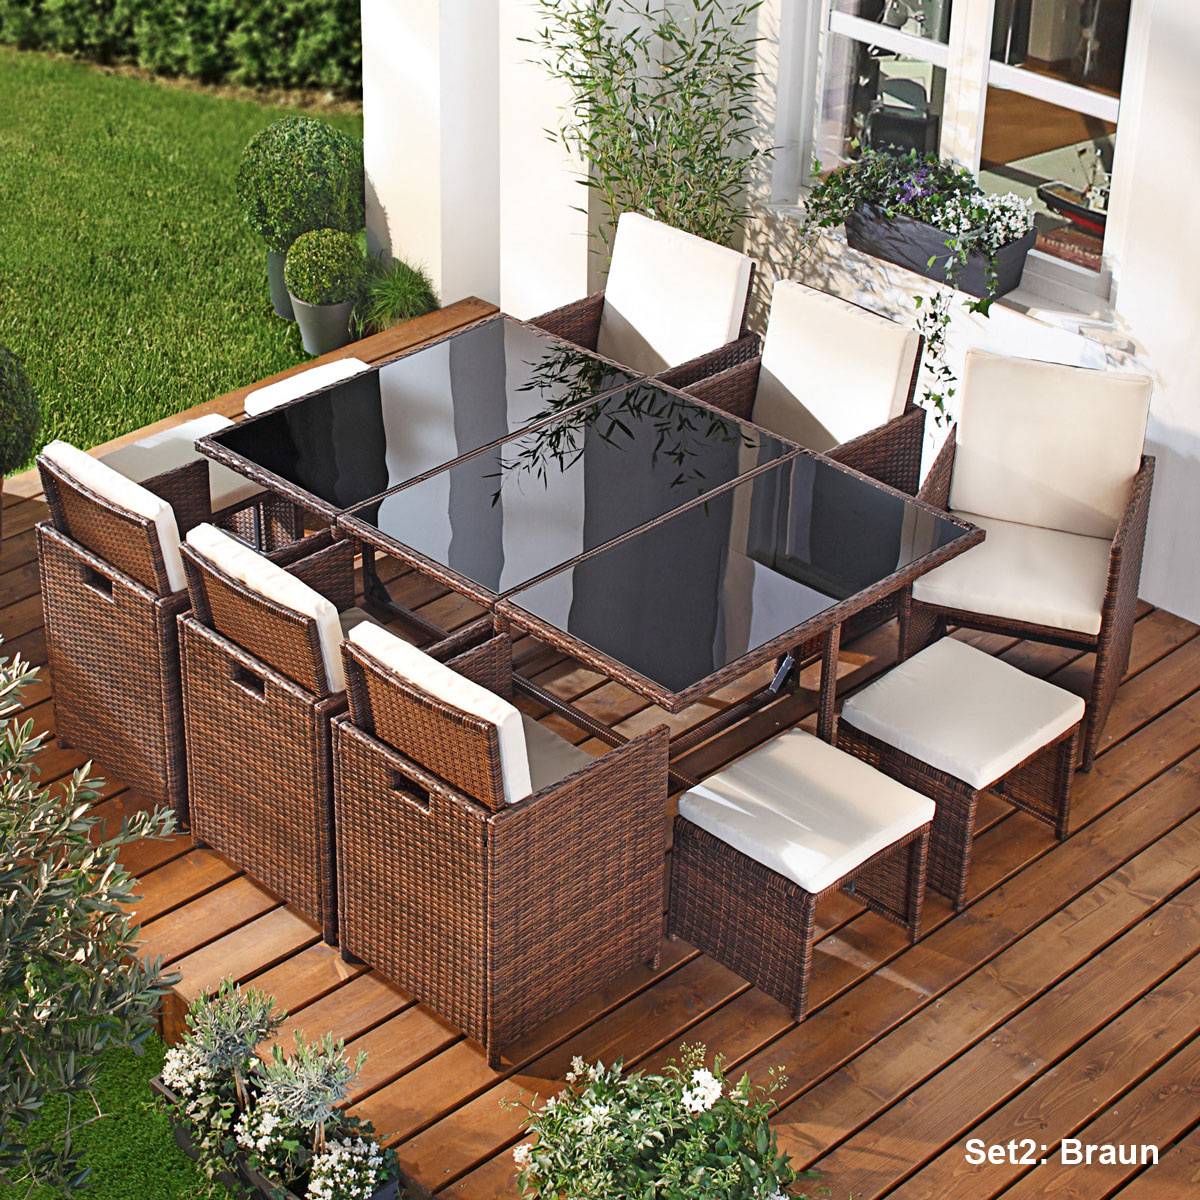 poly rattan sitzgarnitur gartenm bel gartengarnitur gartenset sitzgruppe lounge ebay. Black Bedroom Furniture Sets. Home Design Ideas